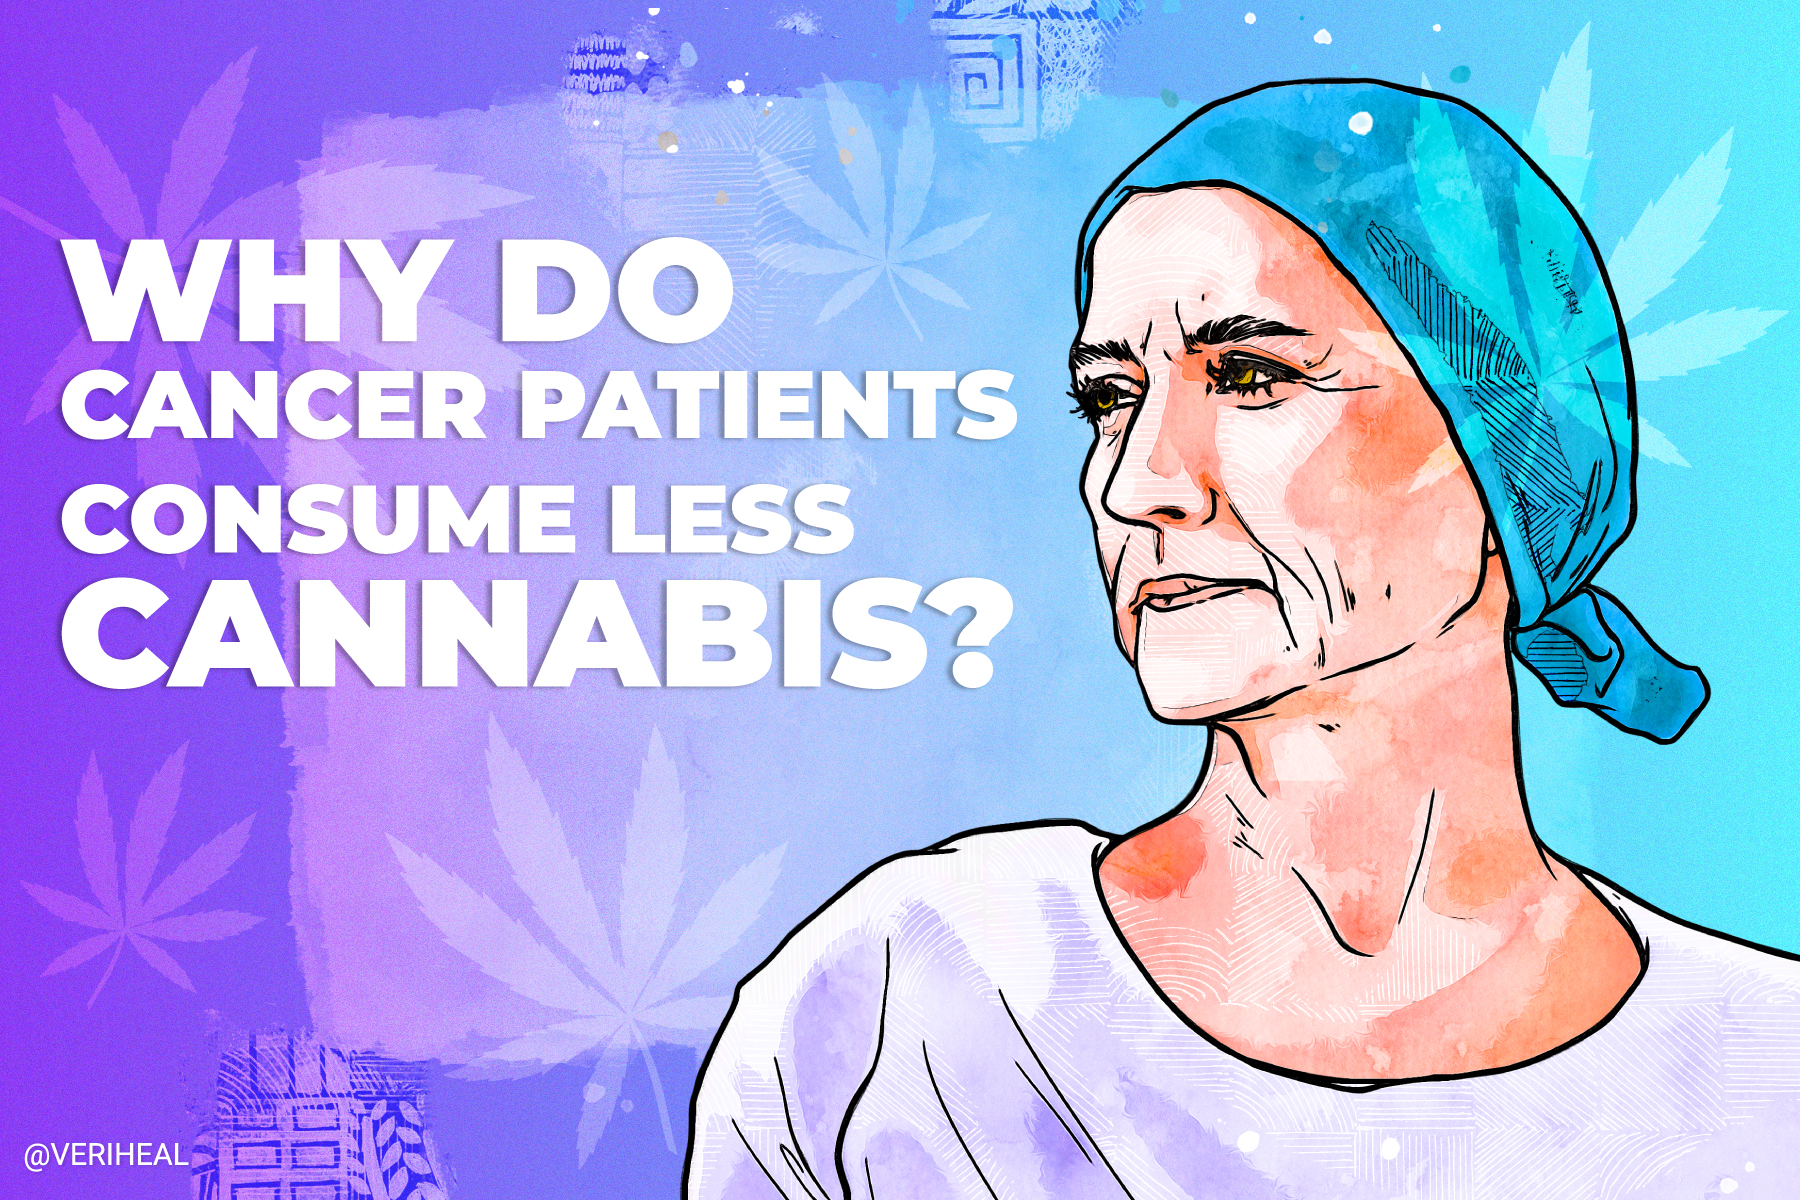 Study Finds That Cancer Patients Consume Less Cannabis Than the Public